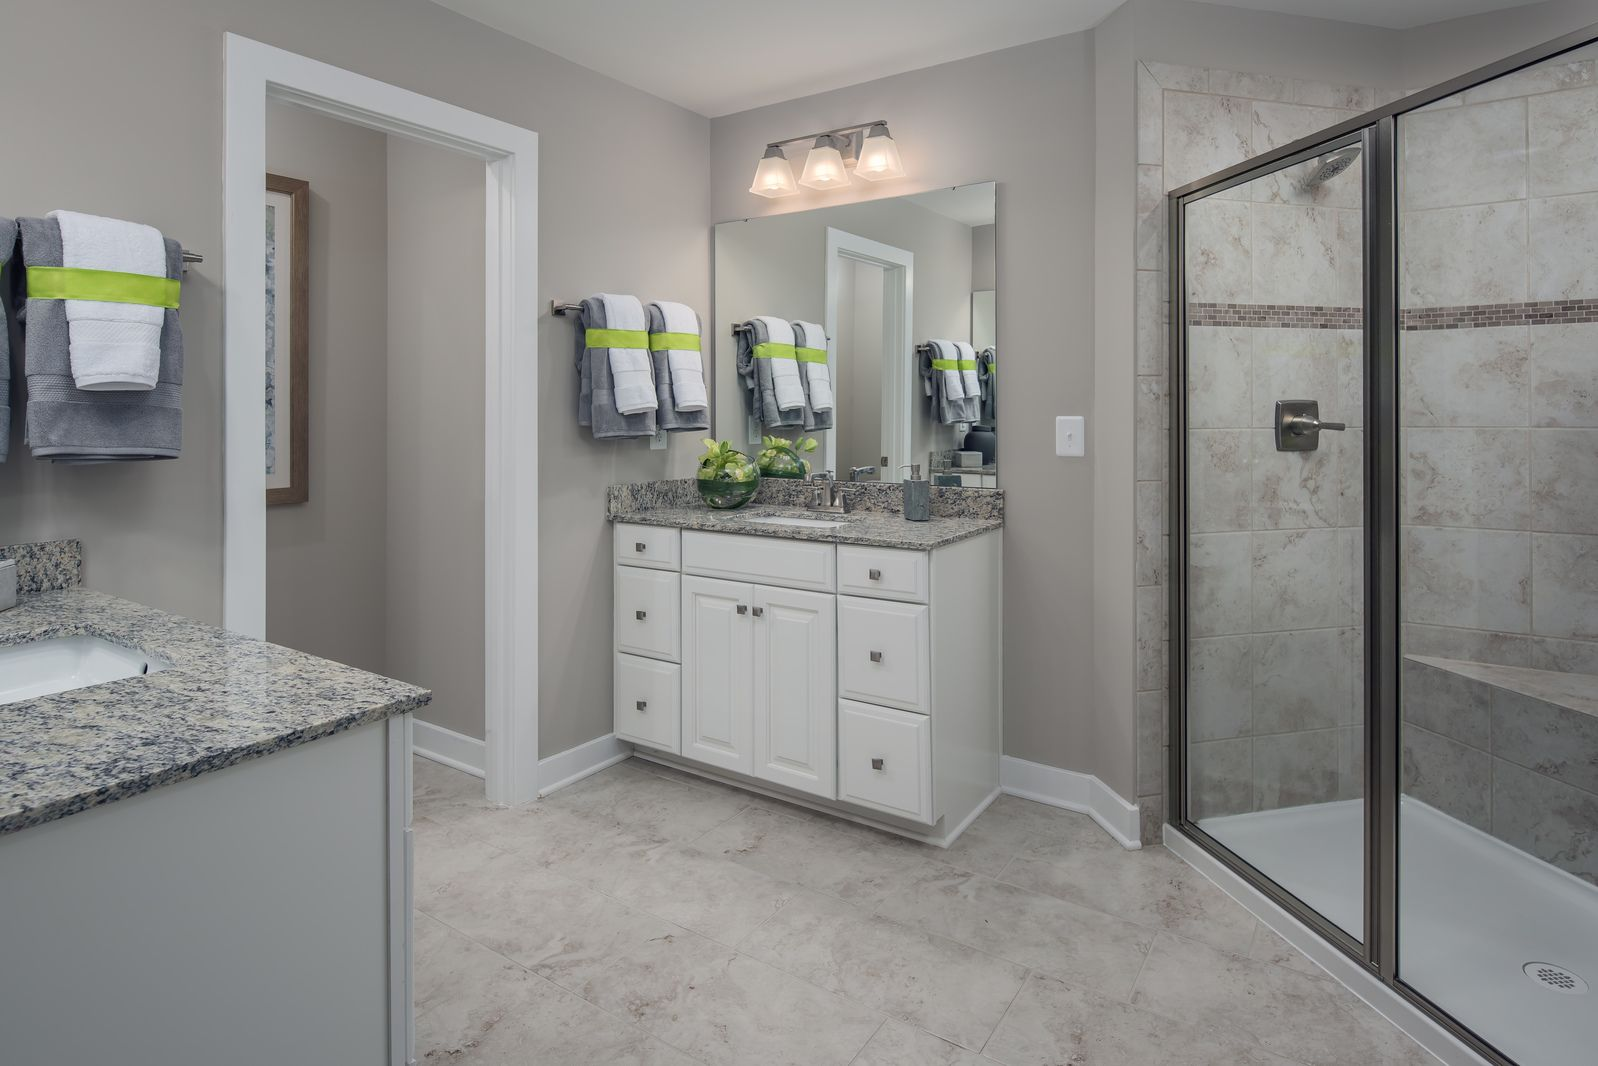 Bathroom featured in the Landon By Ryan Homes in Cleveland, OH